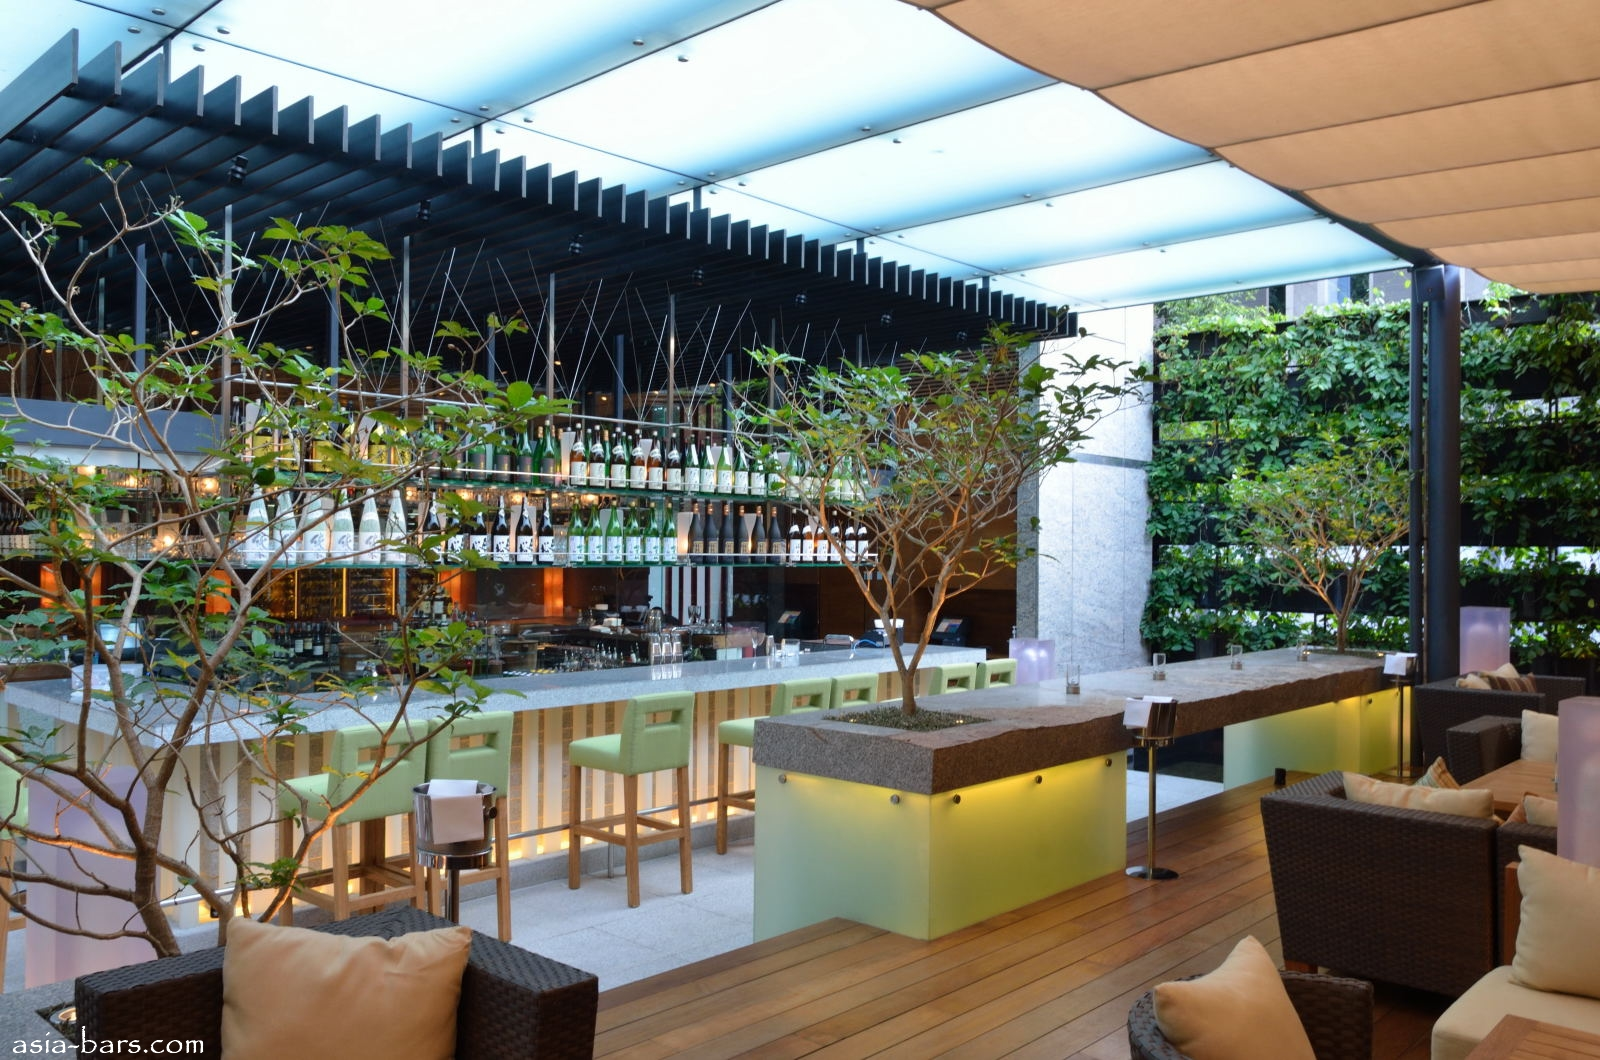 Zuma bangkok globally acclaimed restaurant group opens for The terrace bar